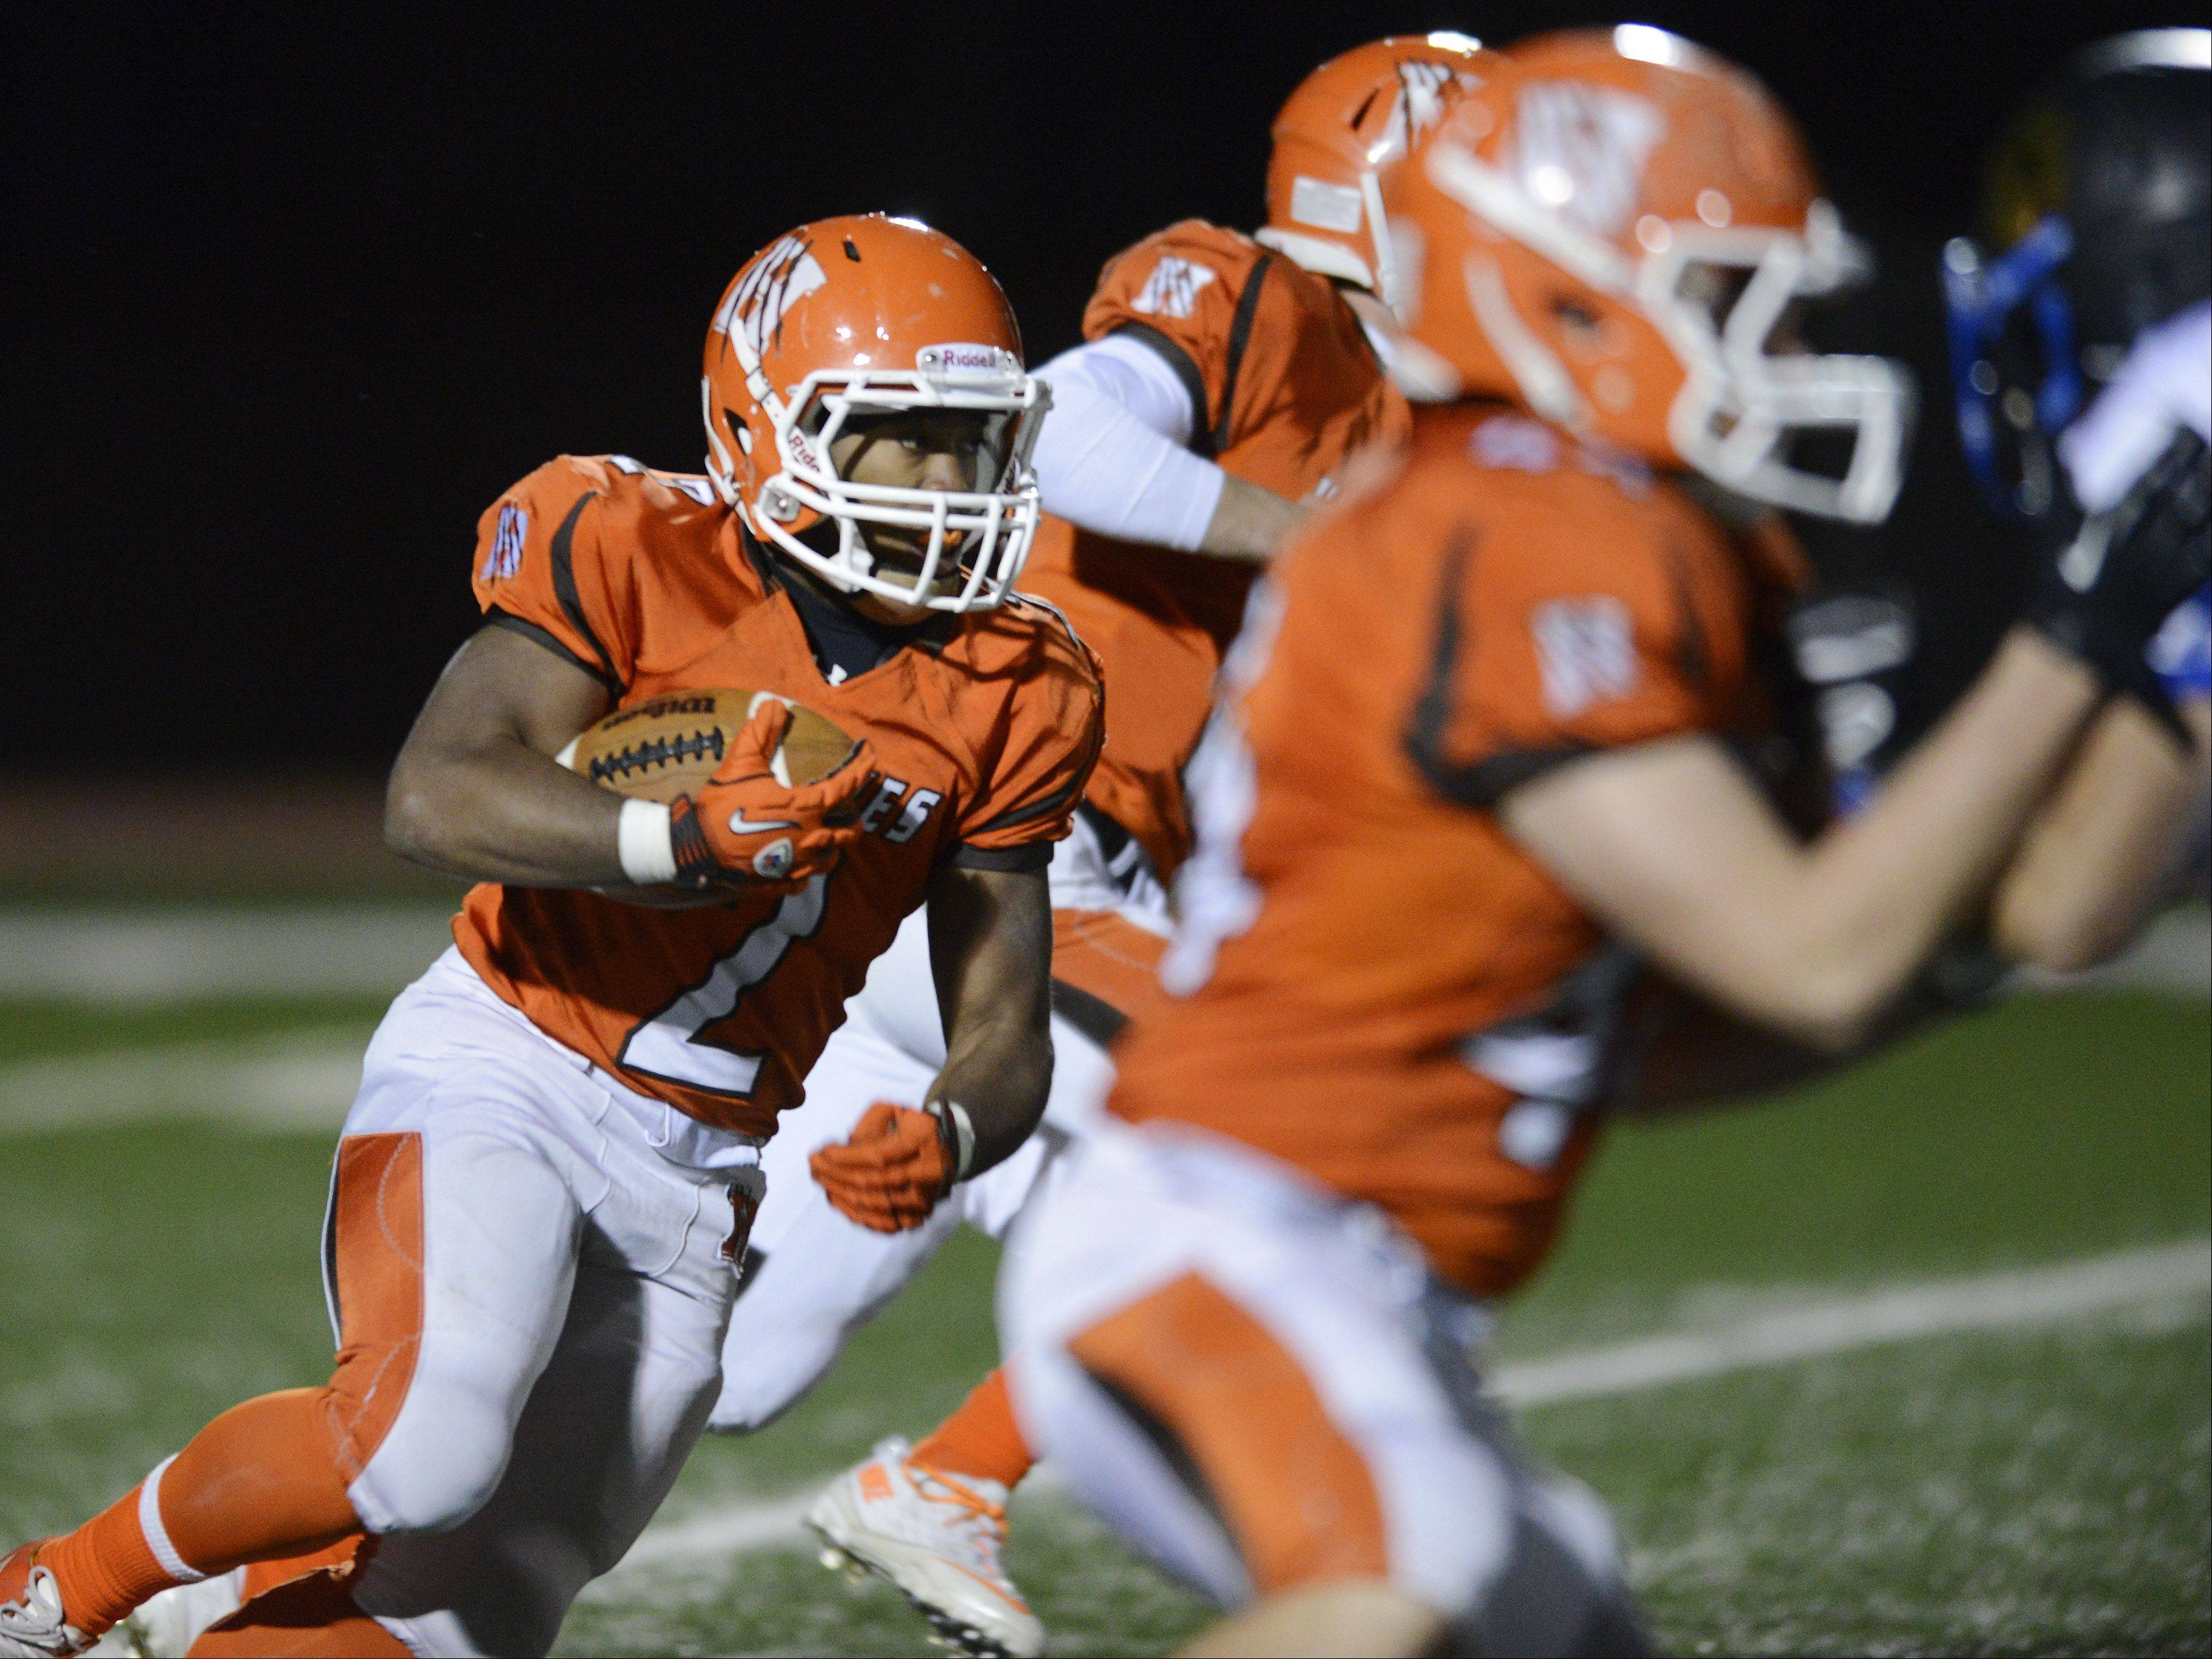 Hersey's Mario Thomas carries the ball for a touchdown on the first play from scrimmage to start the third quarter against Wheeling on Friday.